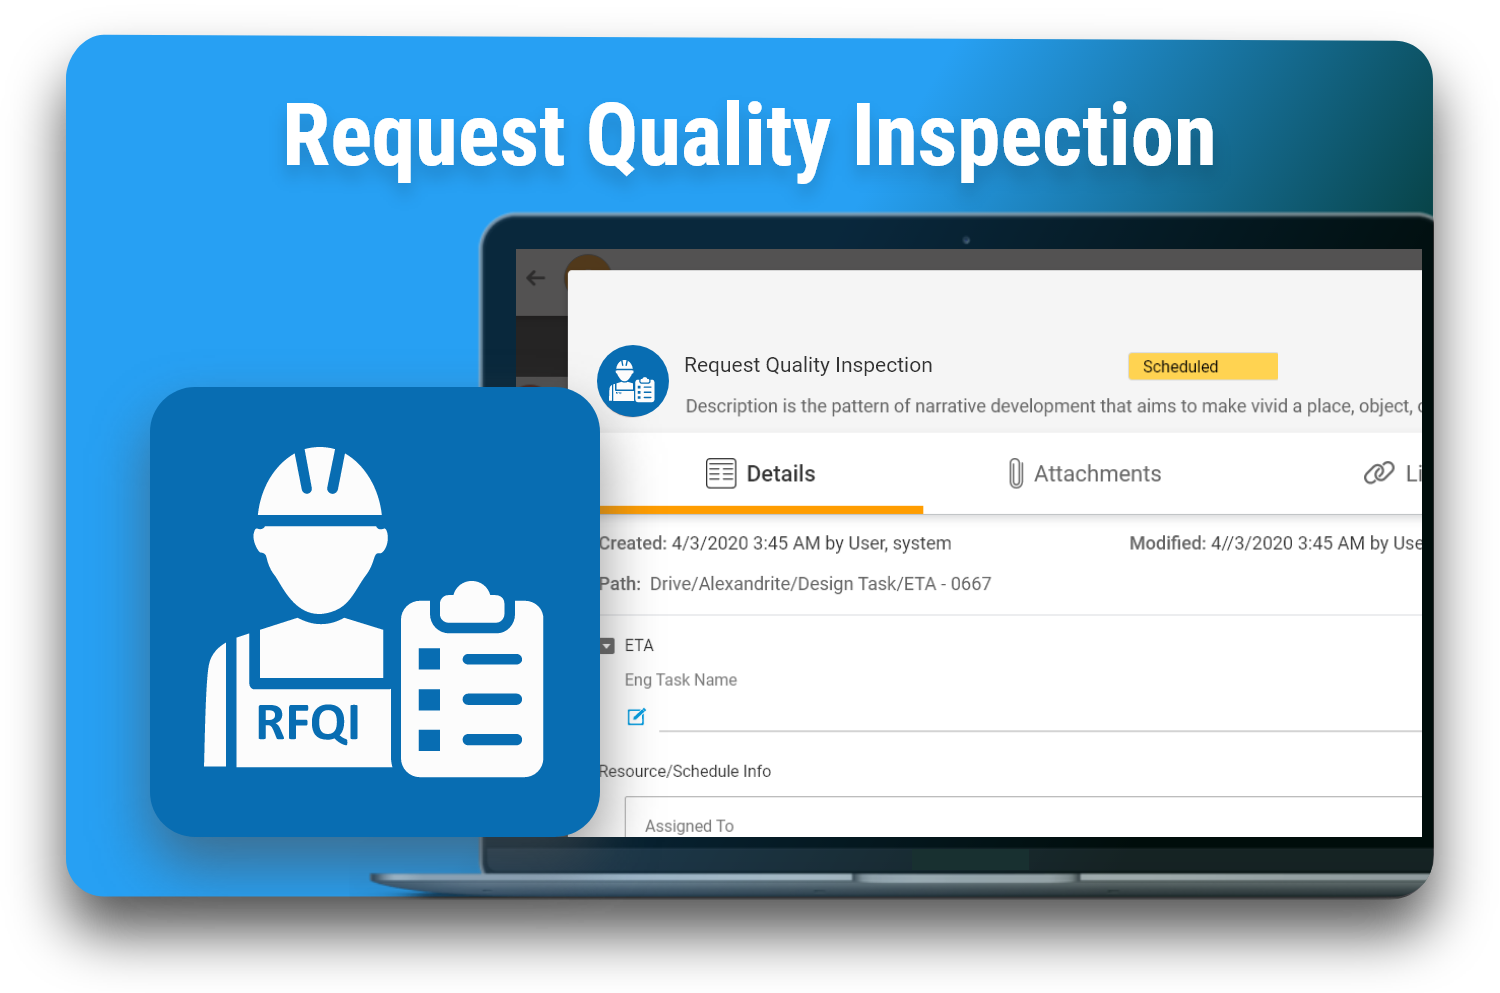 Request Quality Inspection